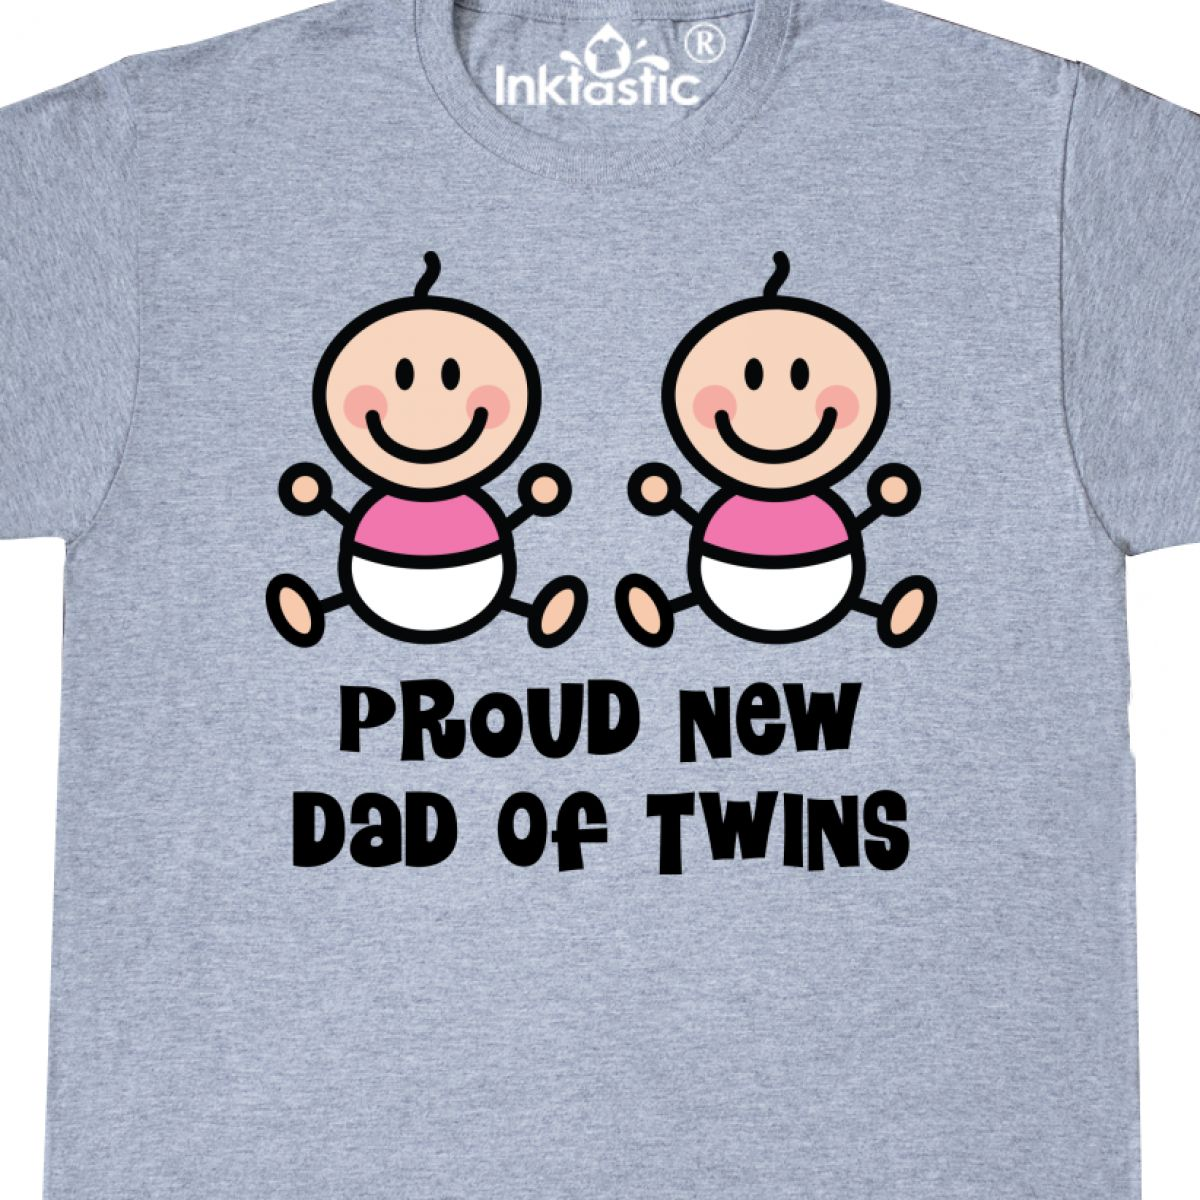 fe26a42b Inktastic Dad Of Twin Girls T-Shirt Twins Fathers Day New Having ...